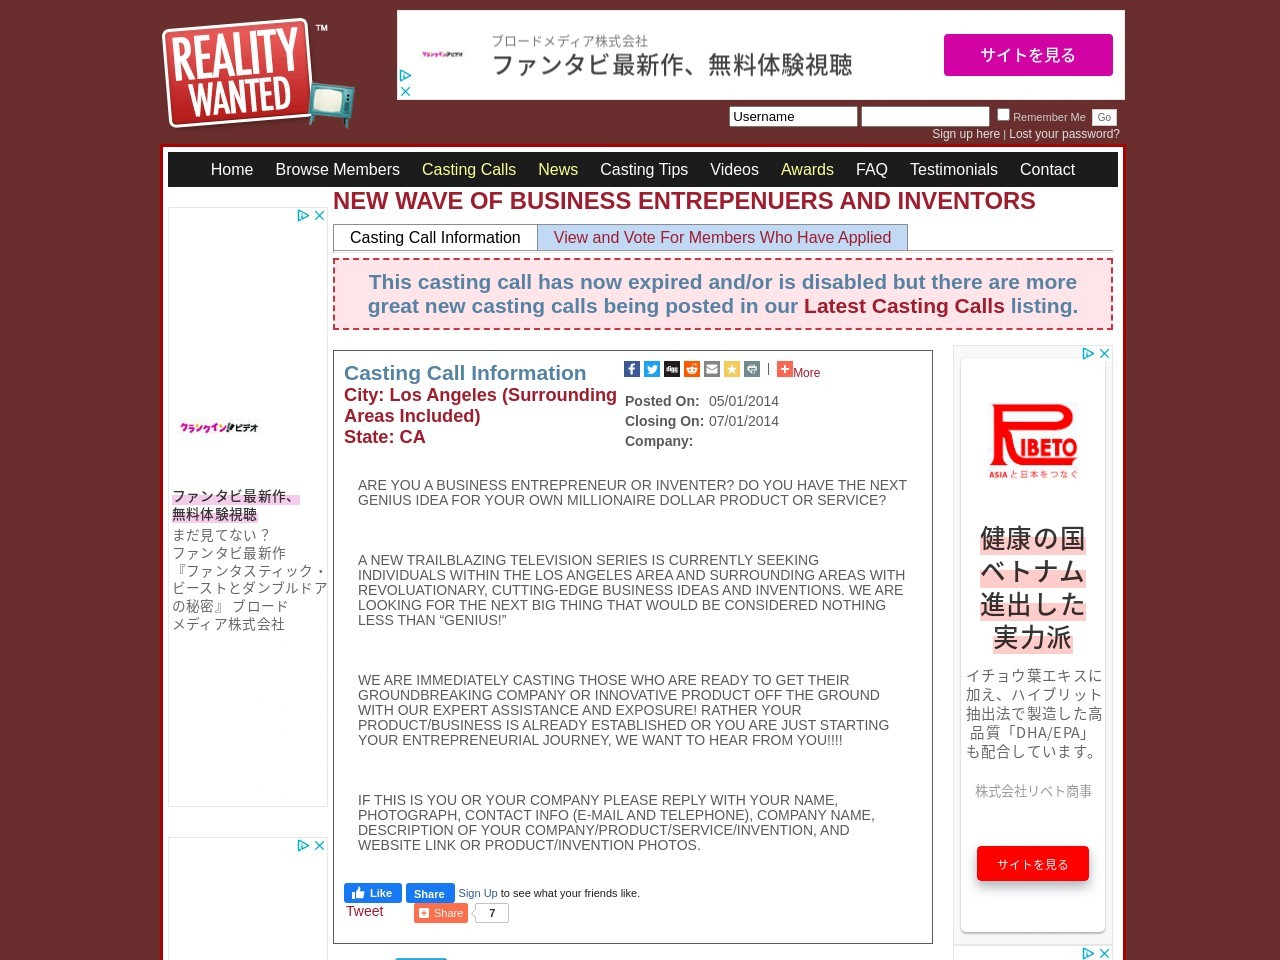 NEW WAVE OF BUSINESS ENTREPENUERS AND INVENTORS